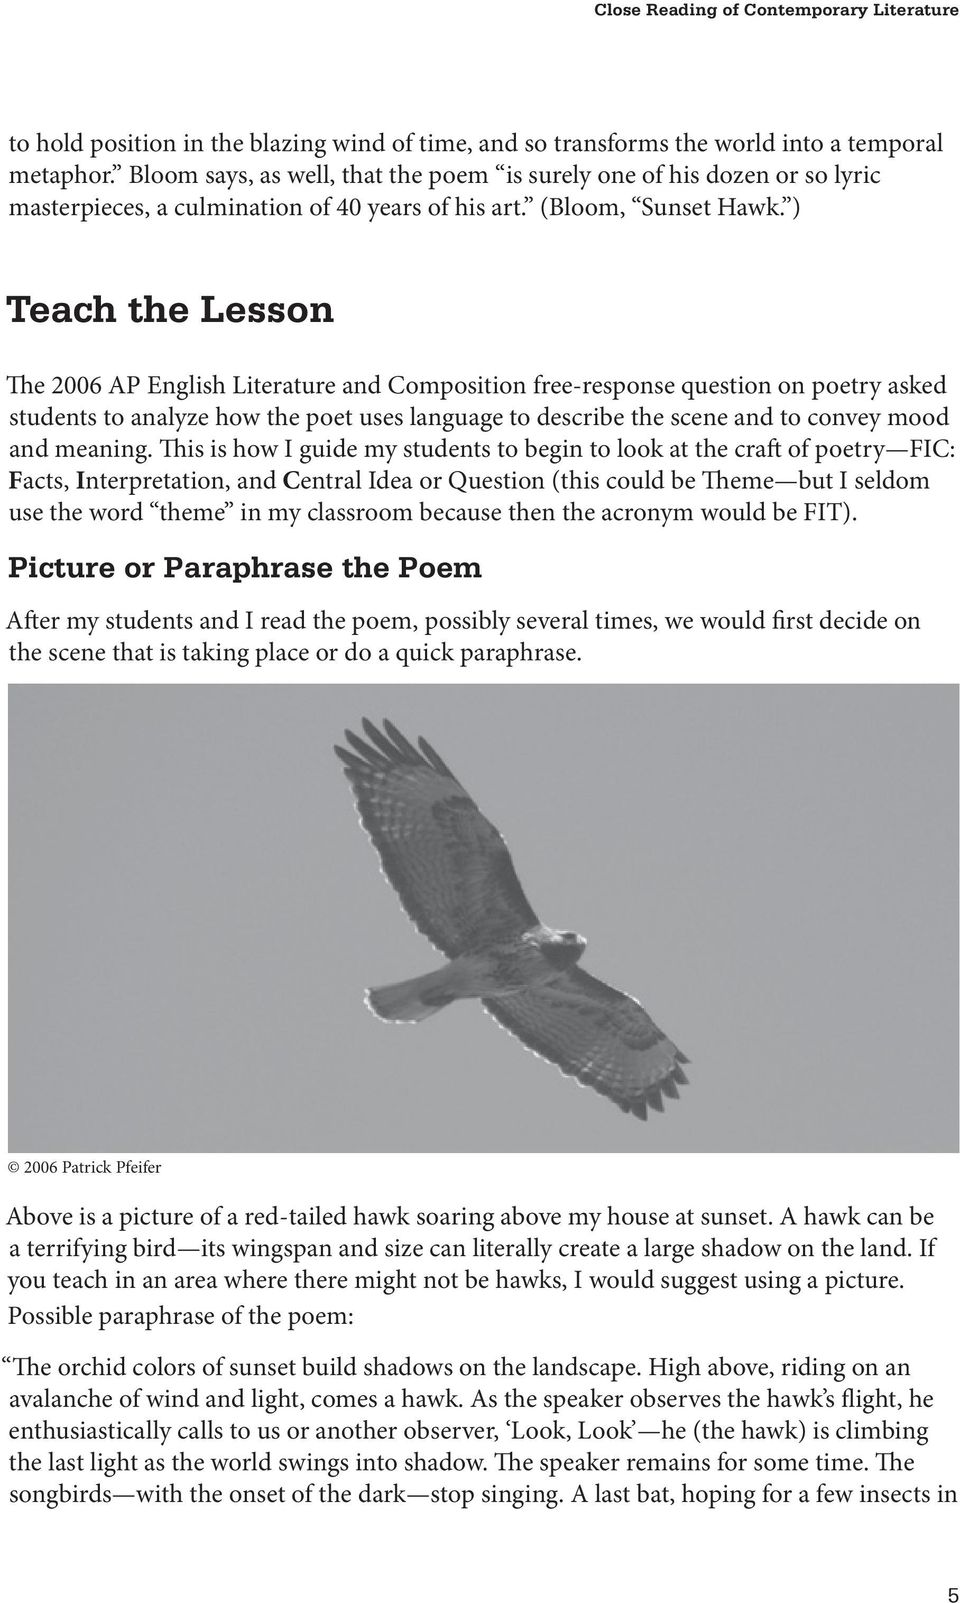 ) Teach the Lesson The 2006 AP English Literature and Composition free-response question on poetry asked students to analyze how the poet uses language to describe the scene and to convey mood and